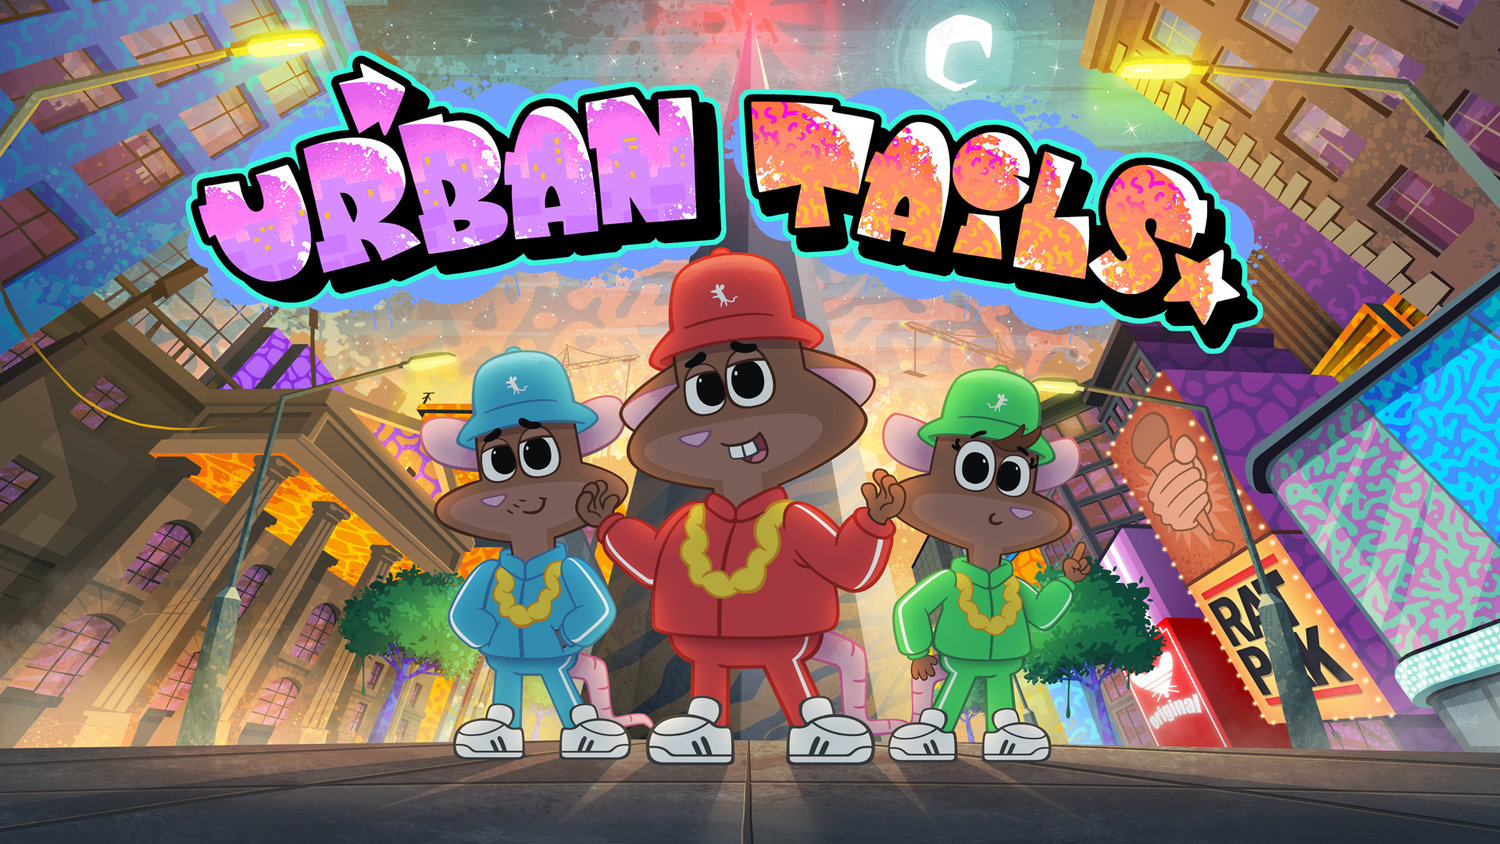 Image result for urban tails